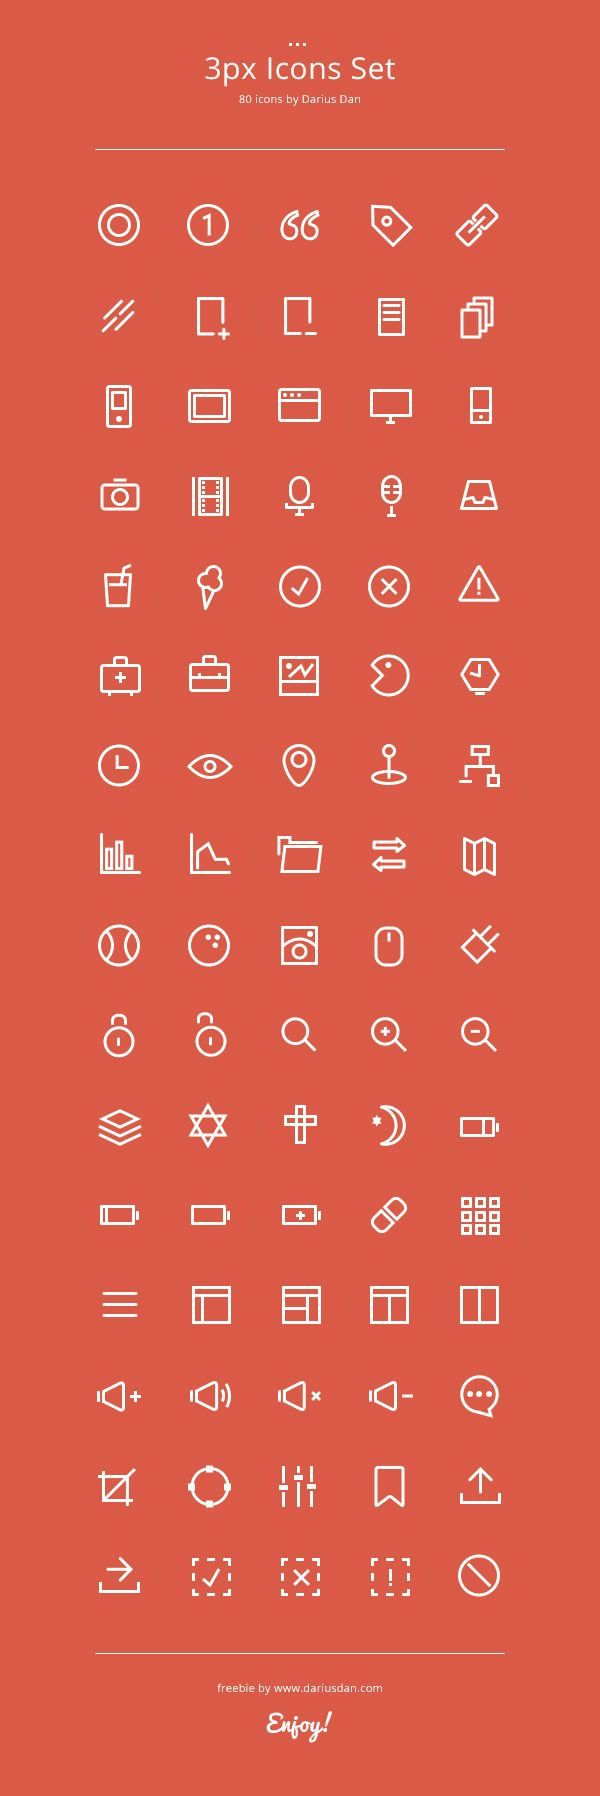 3px Icons Set | GraphicBurger